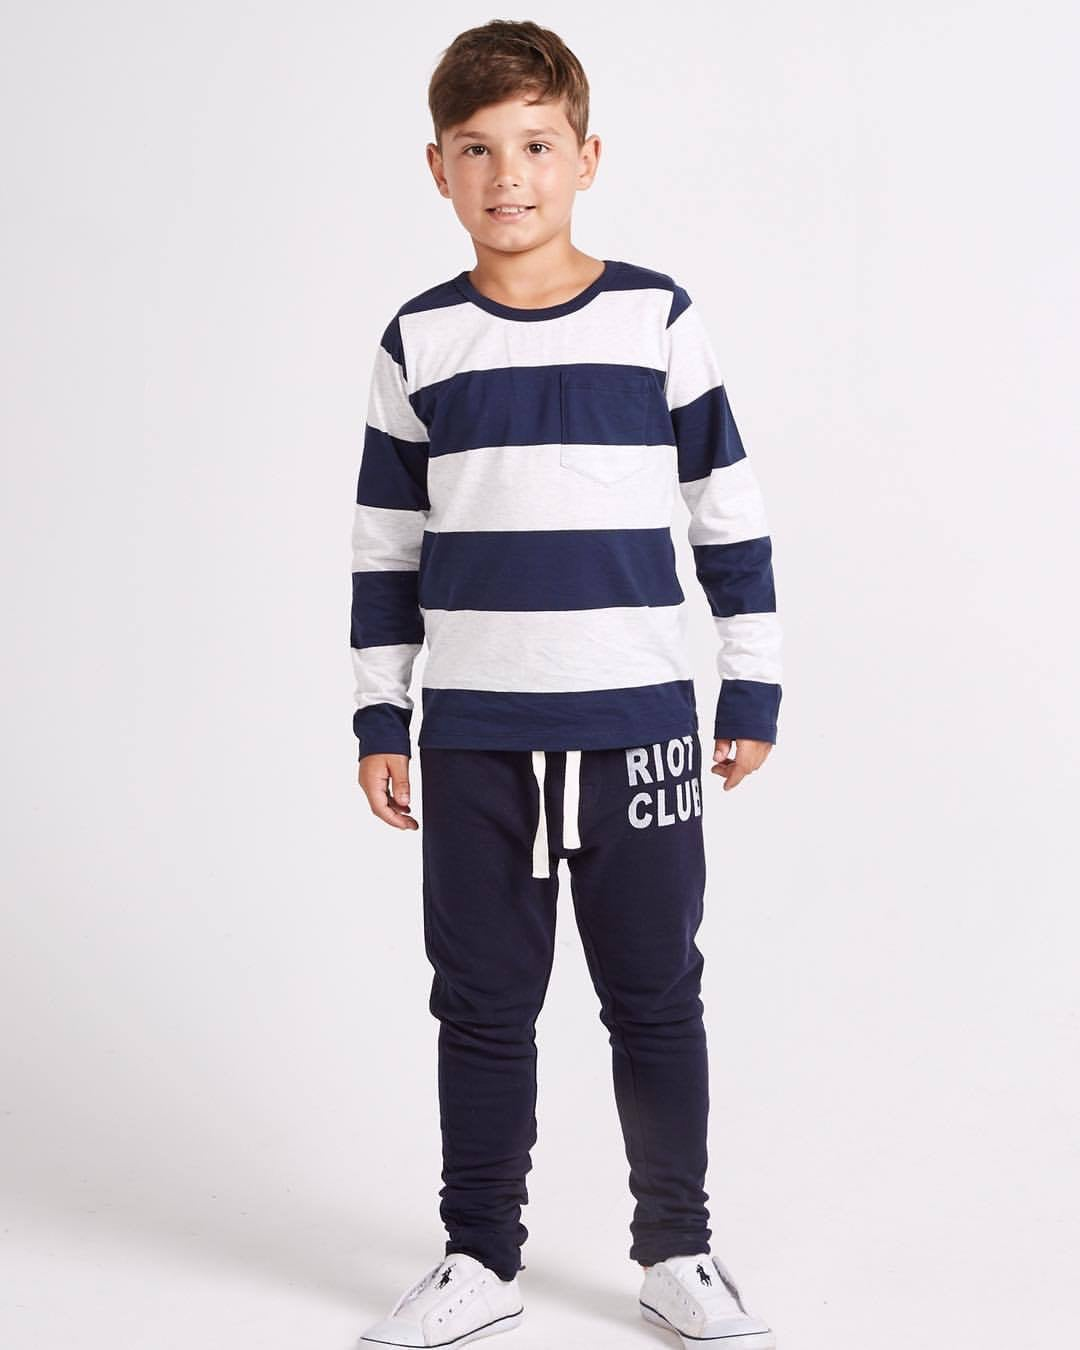 Image of Boys striped top